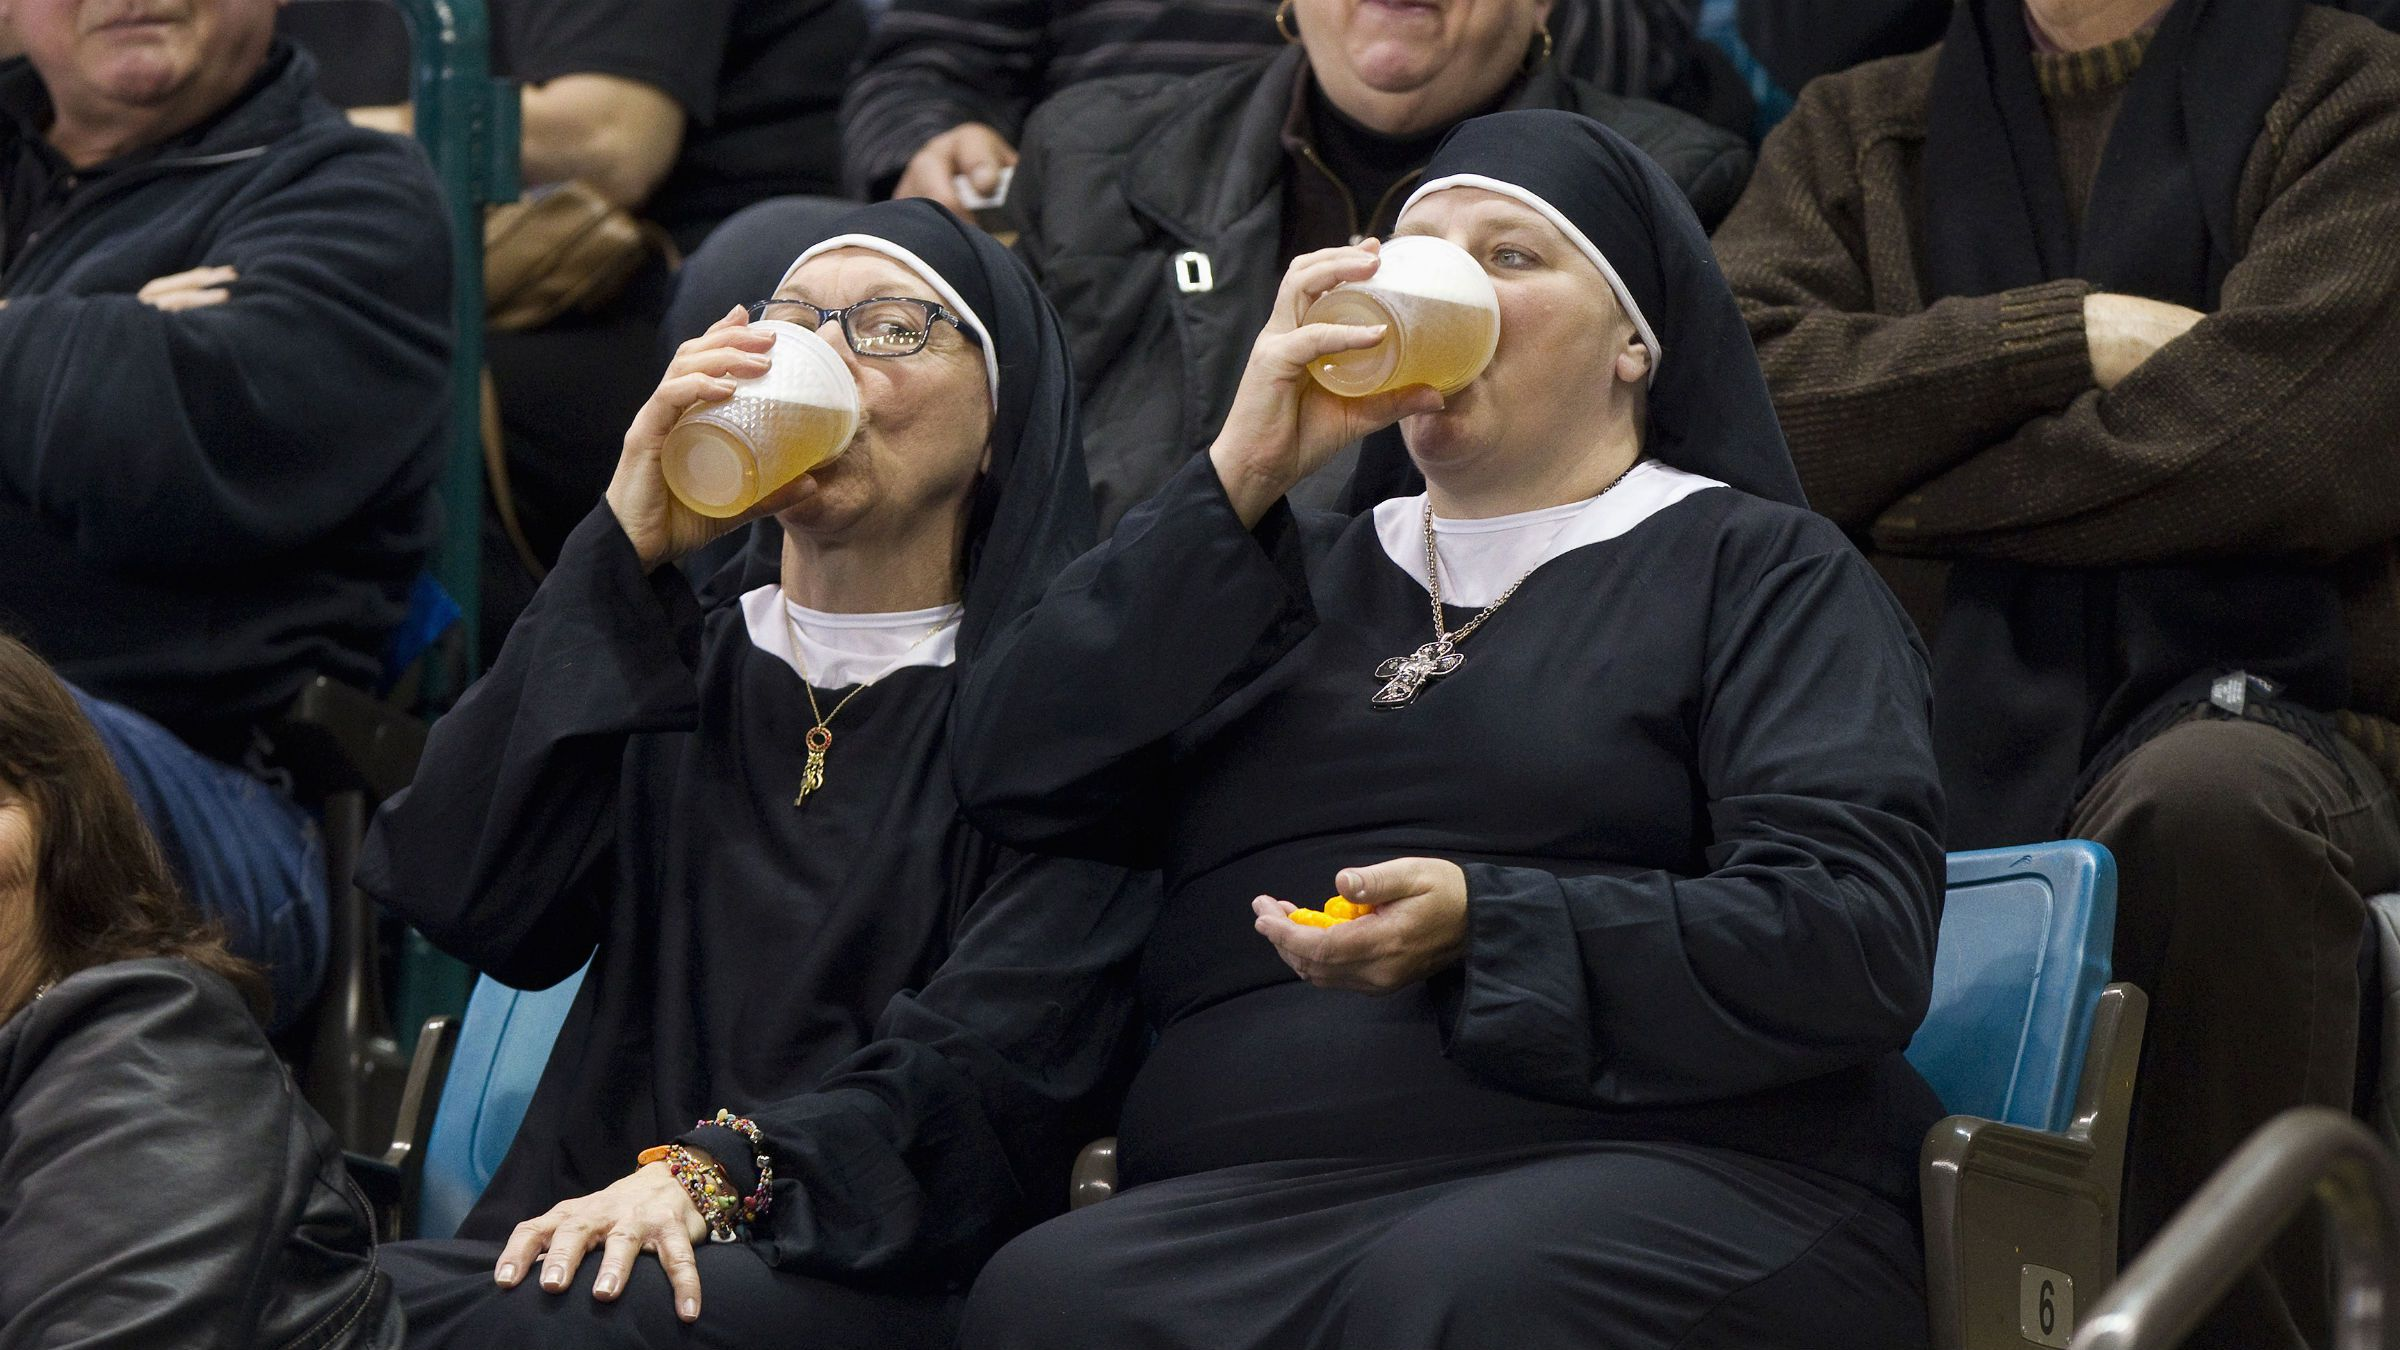 Two women wearing nun outfits drink beer while watching the playoff draw between Quebec and Manitoba at the 2014 Tim Hortons Brier curling championships in Kamloops, British Columbia March 8, 2014. REUTERS/Ben Nelms (CANADA - Tags: SPORT CURLING SOCIETY TPX IMAGES OF THE DAY)